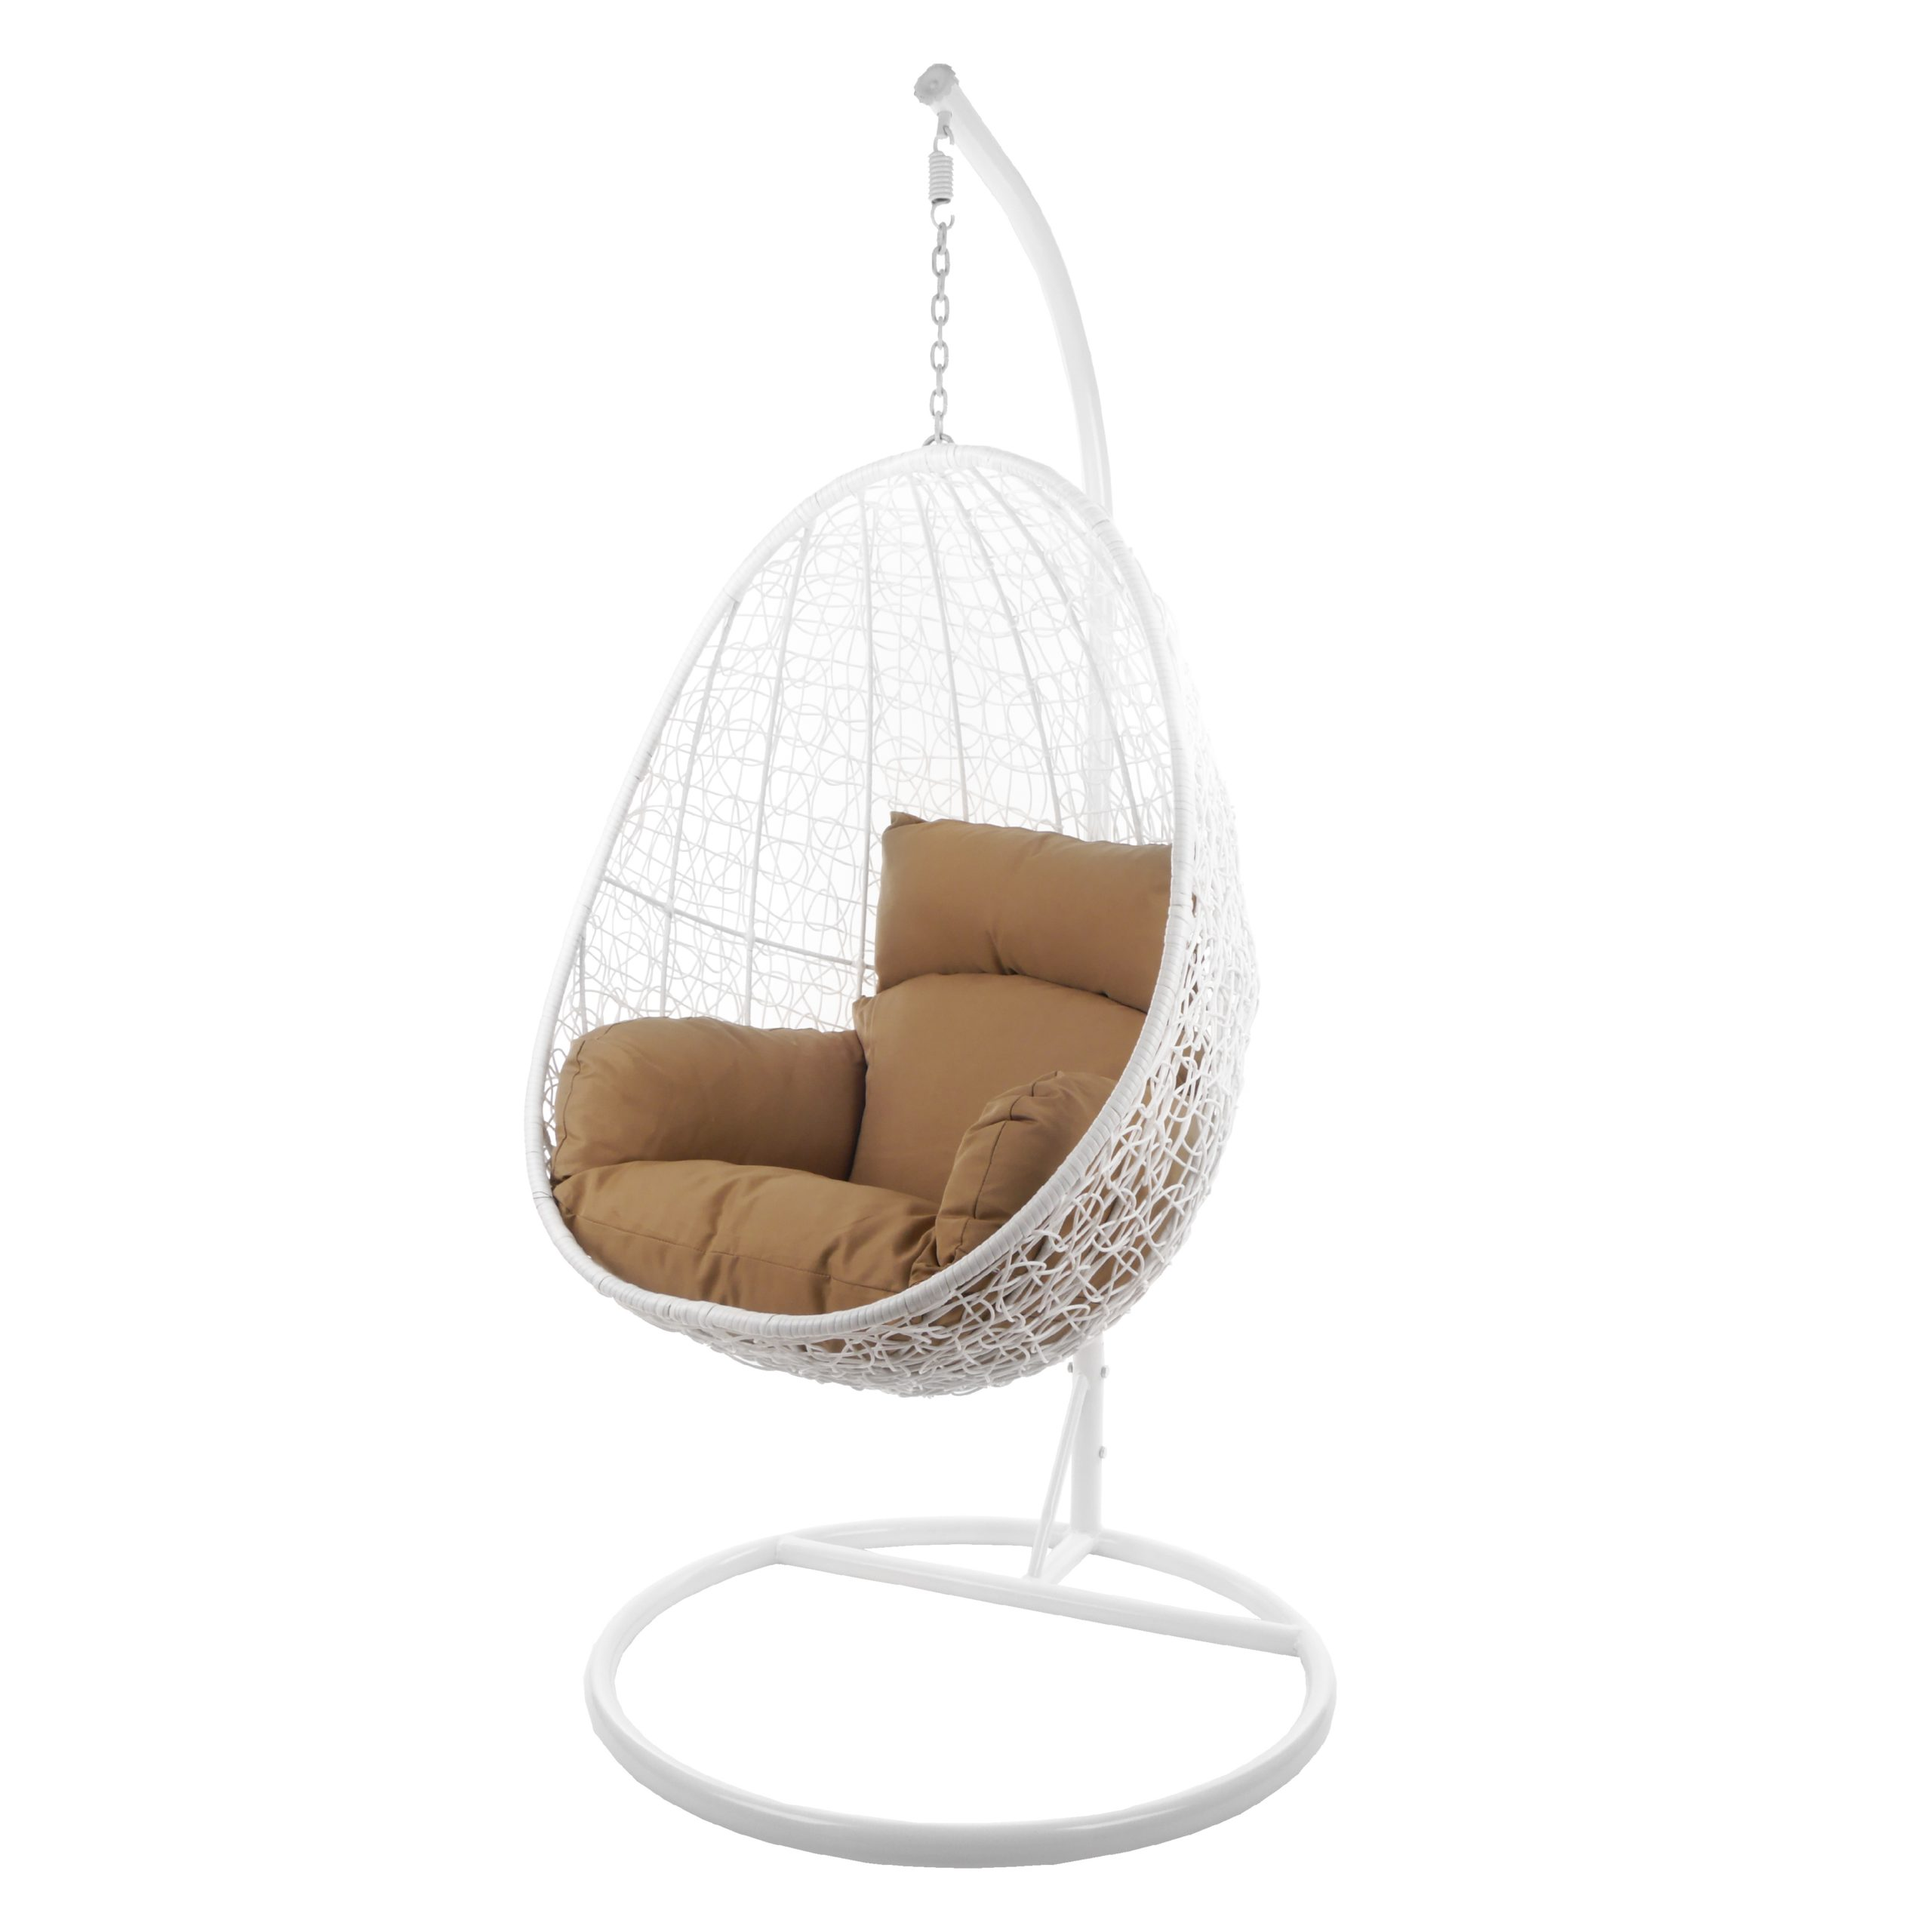 Hängesessel Capdepera Weiß Haselnuss Kideo Swing Chairs